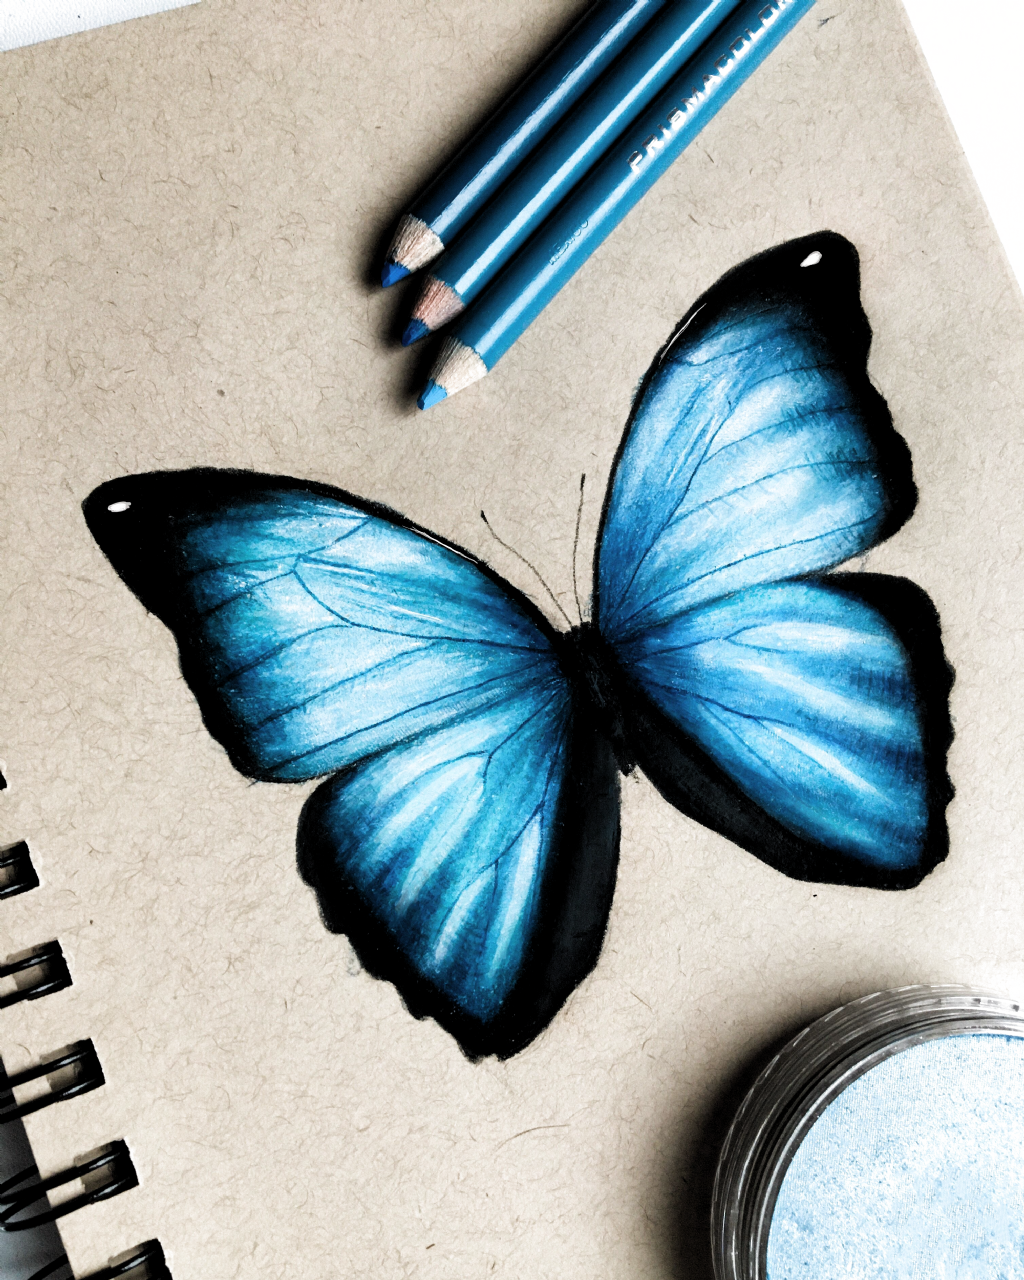 Butterfly Drawing I Drew This Blue Butterfly And I Really Like How It Turned Out I Made This With Prismacol Prismacolor Art Color Pencil Art Butterfly Drawing